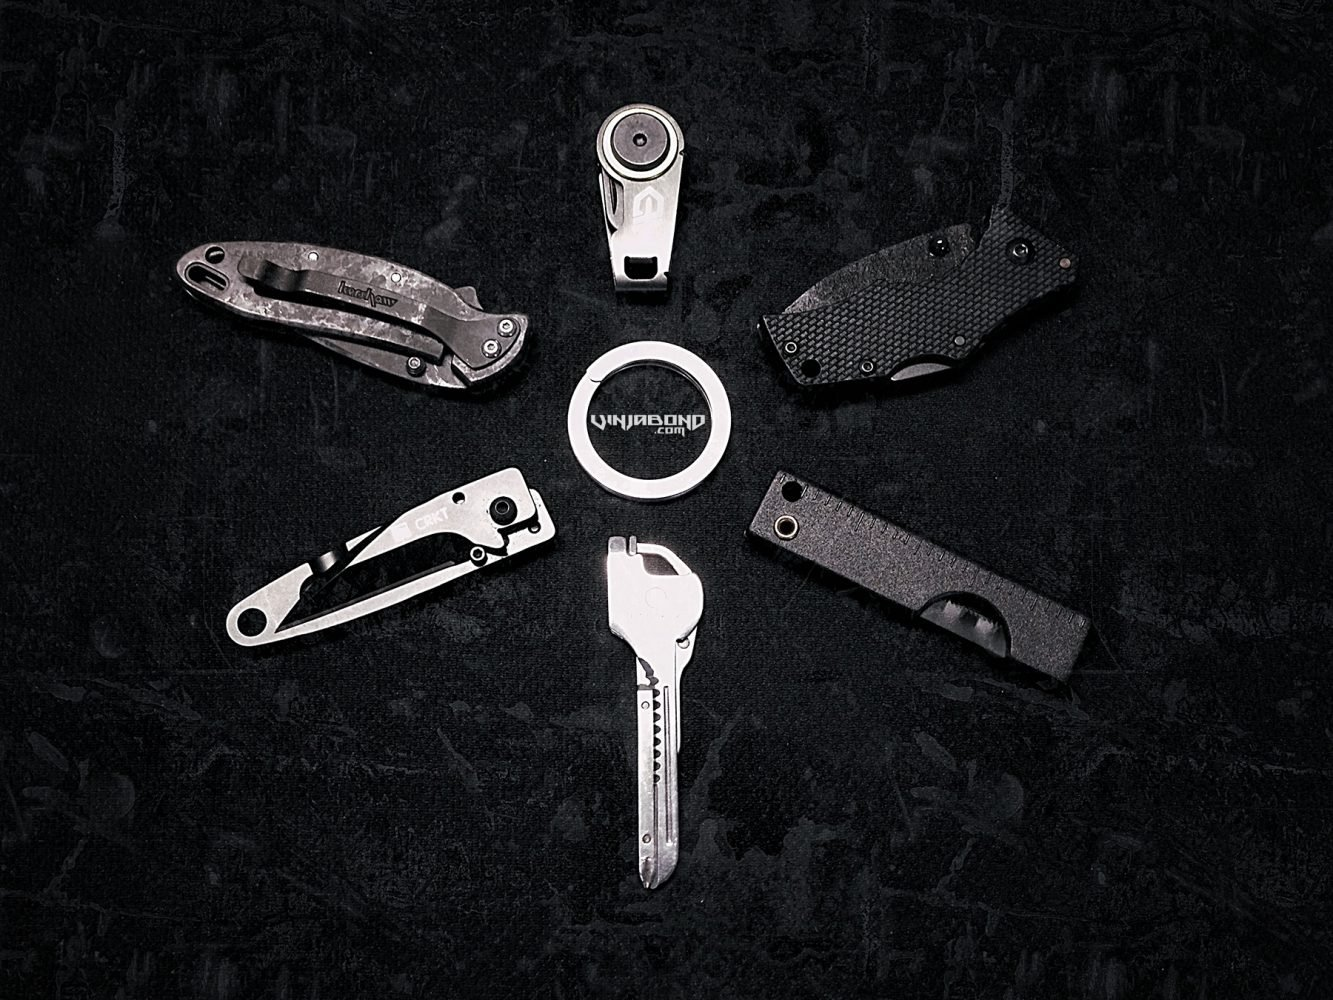 6 Keychain EDC Knives For Travel  // Vinjatek